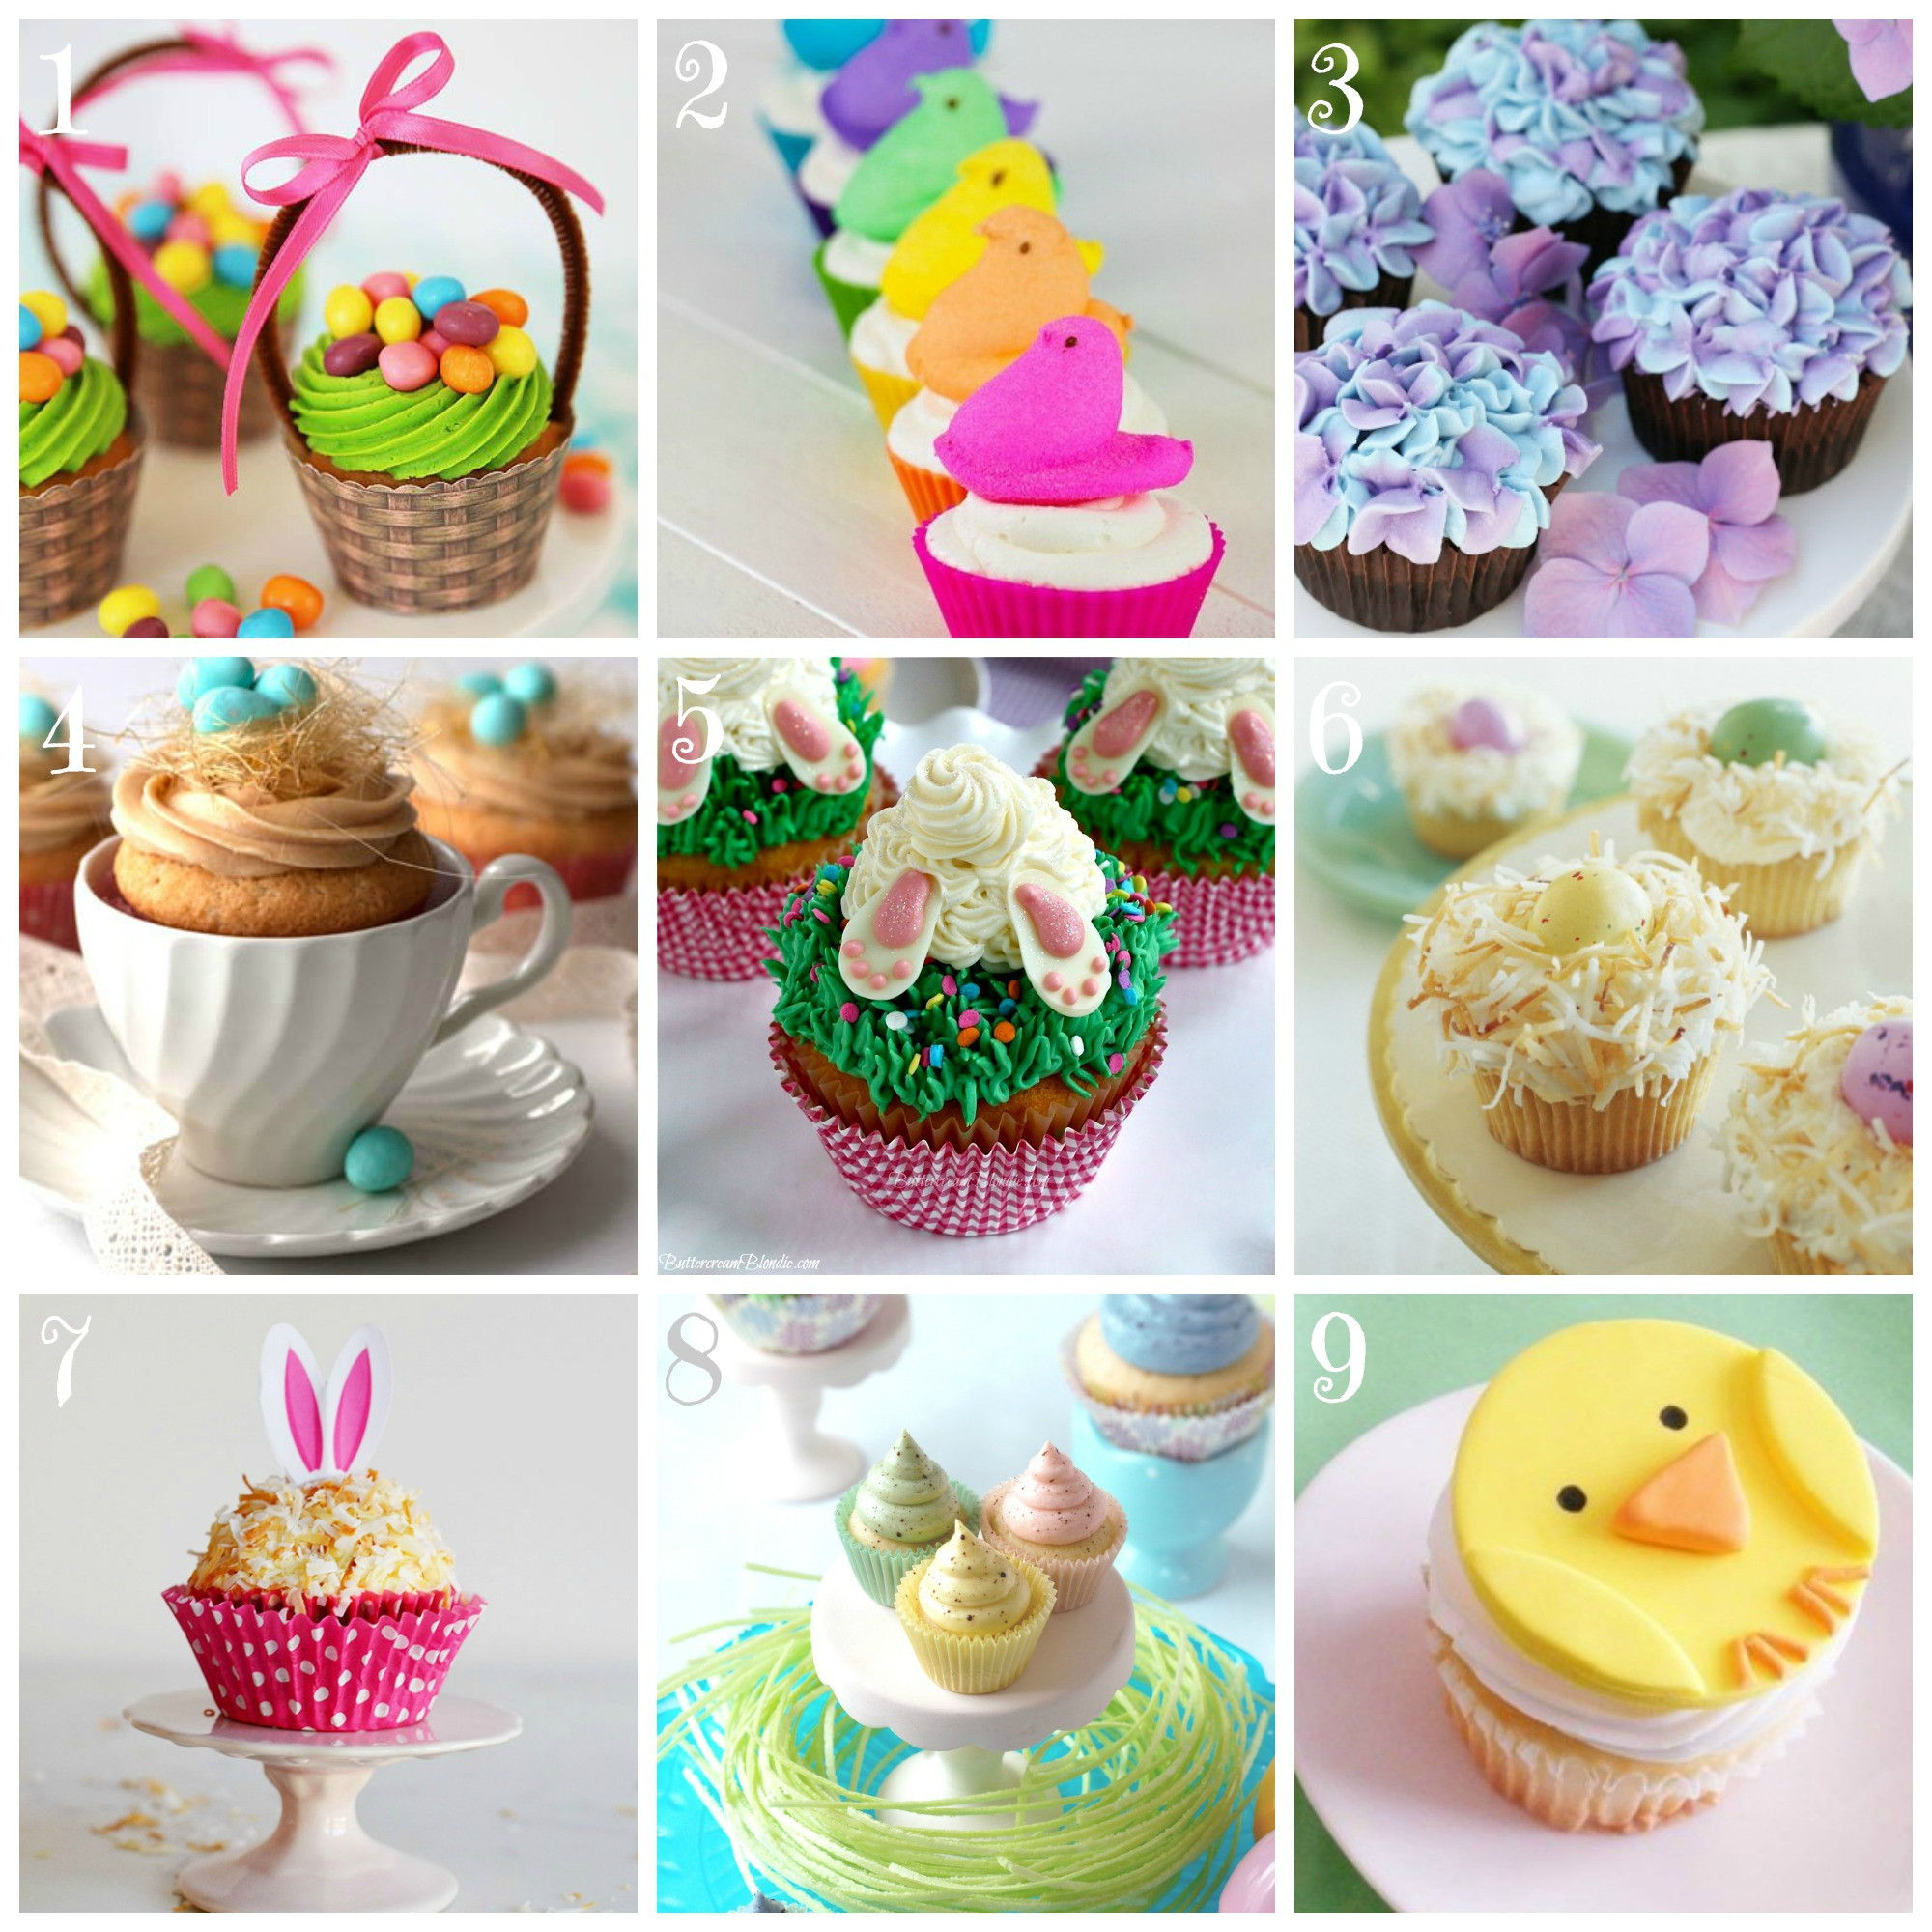 Easter Cupcakes Ideas  Top 9 Easter Cupcake Recipes